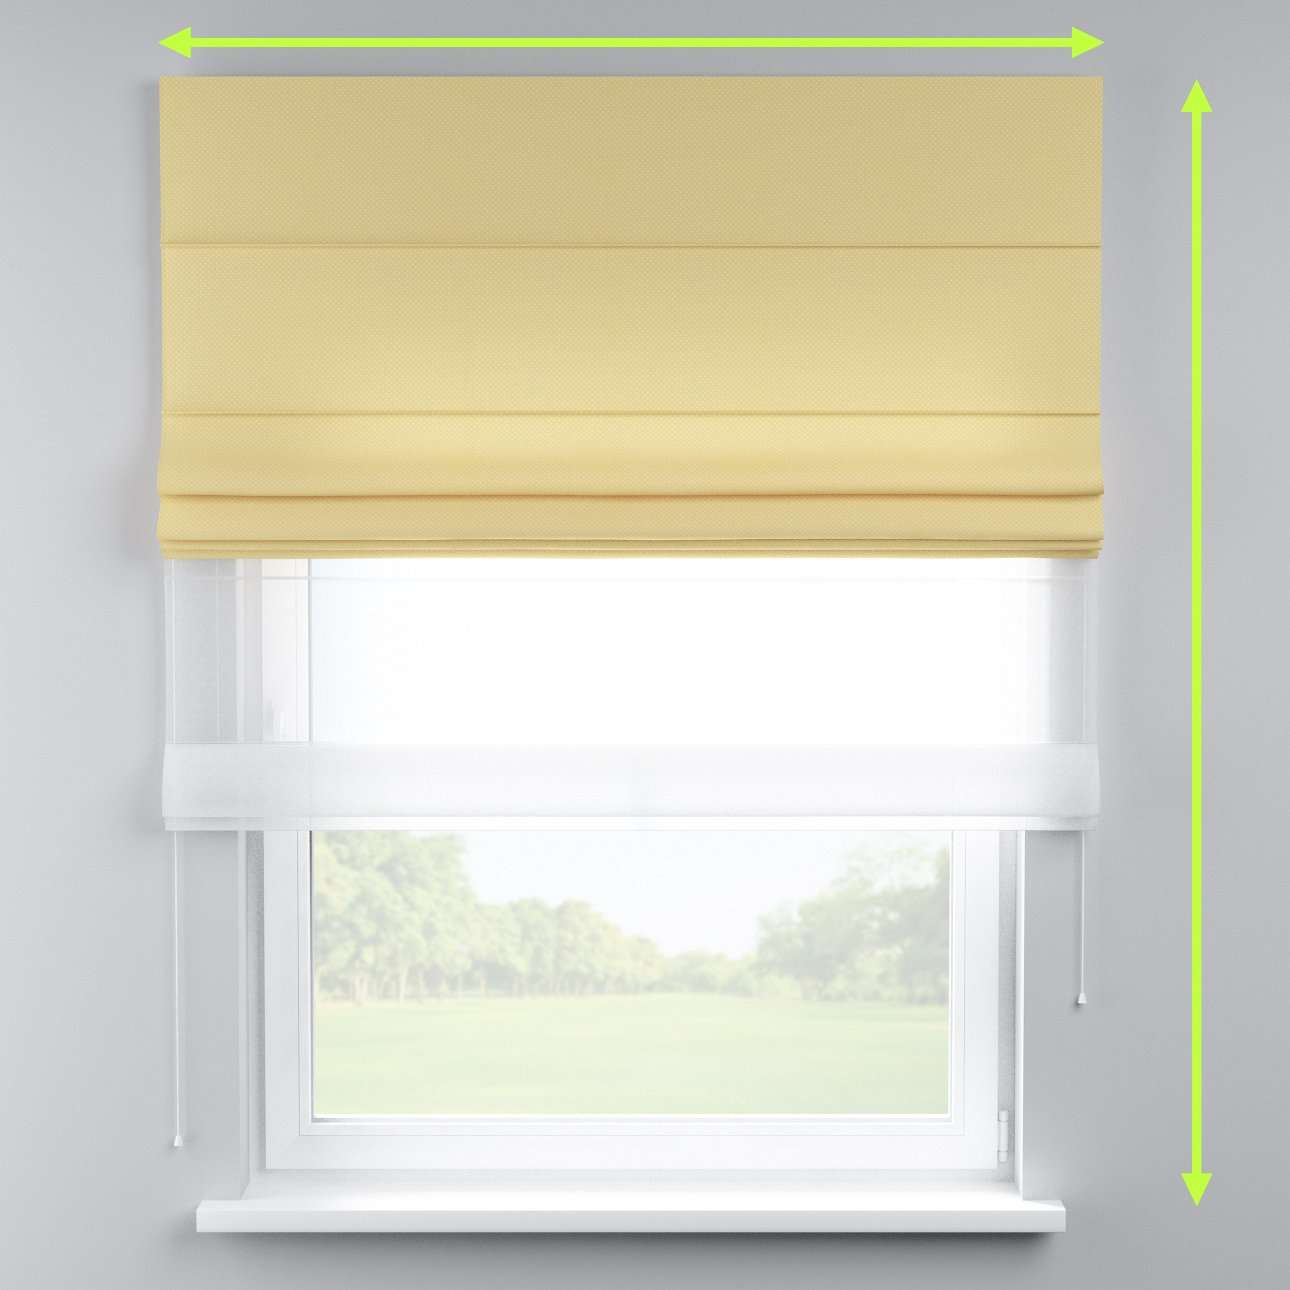 Voile and fabric roman blind (DUO II) in collection Ashley, fabric: 137-66